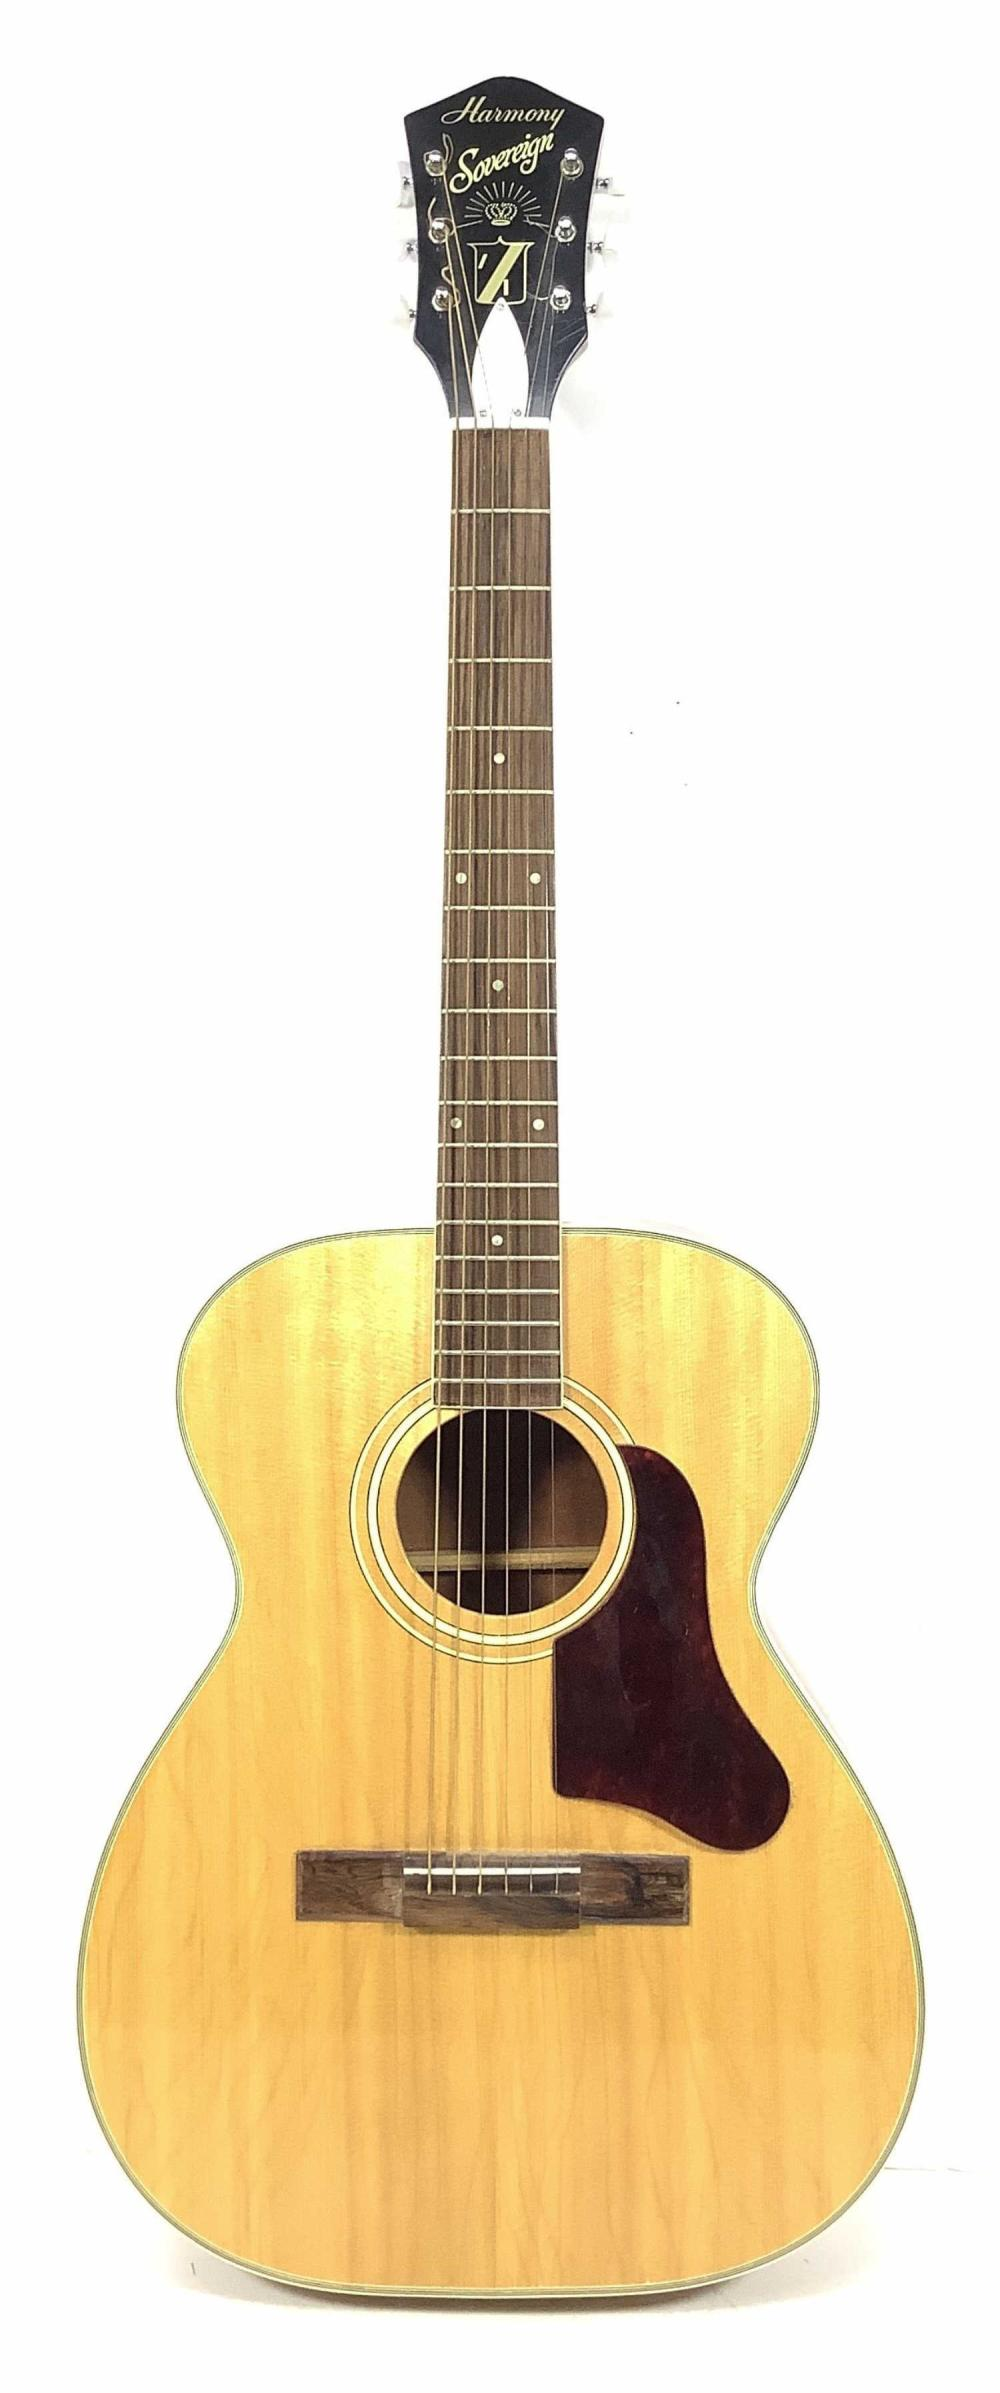 Harmony Sovereign Acoustic Guitar, Chipboard Case